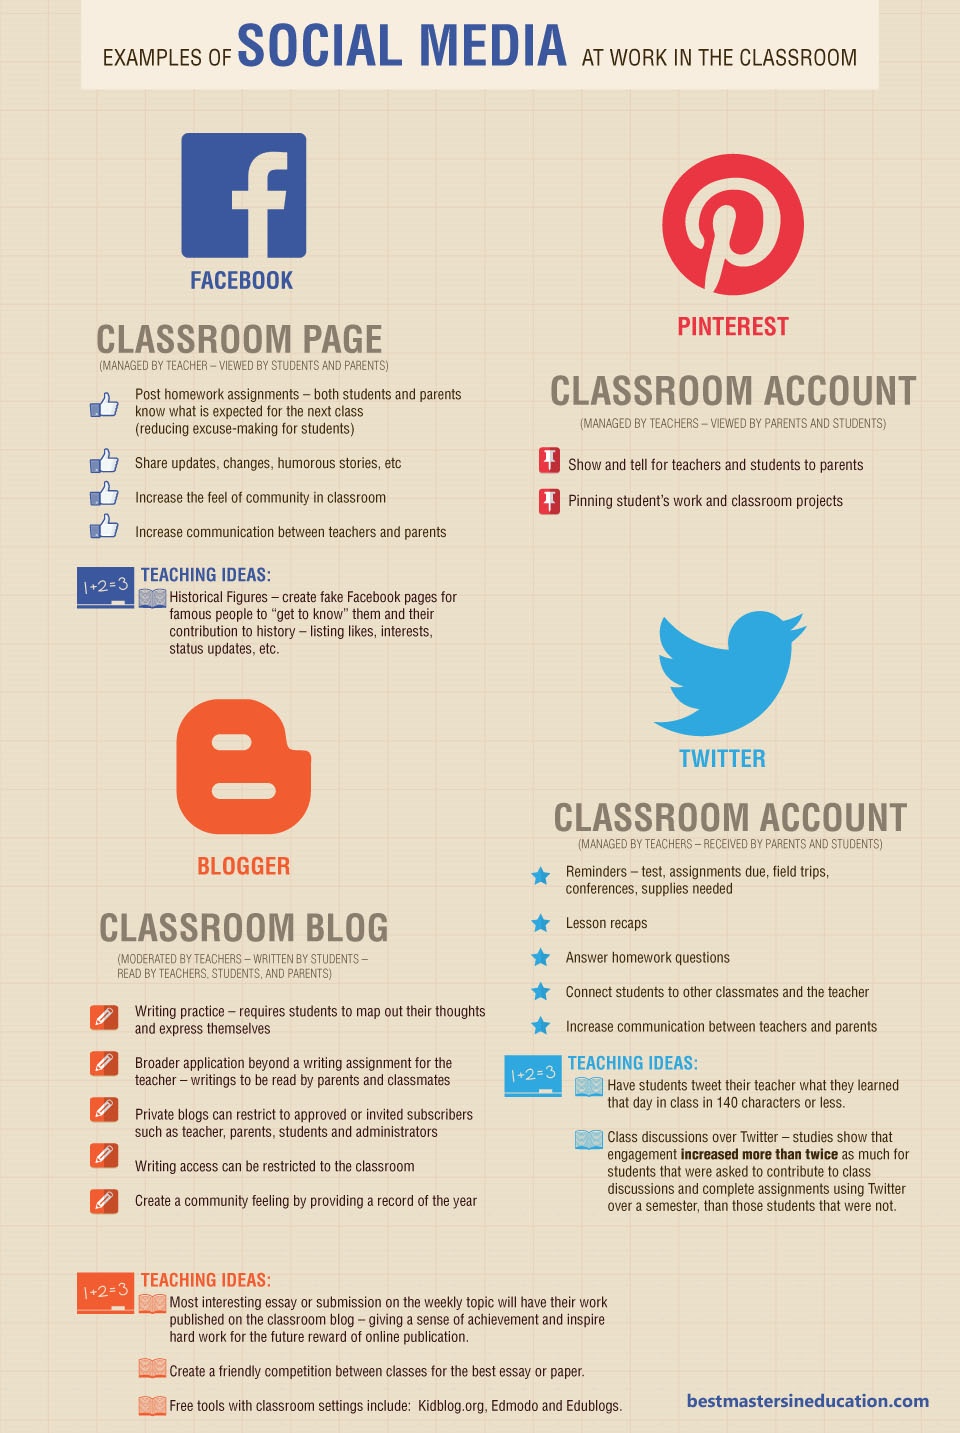 examples-of-social-media-in-the-classroom-ideas-cred